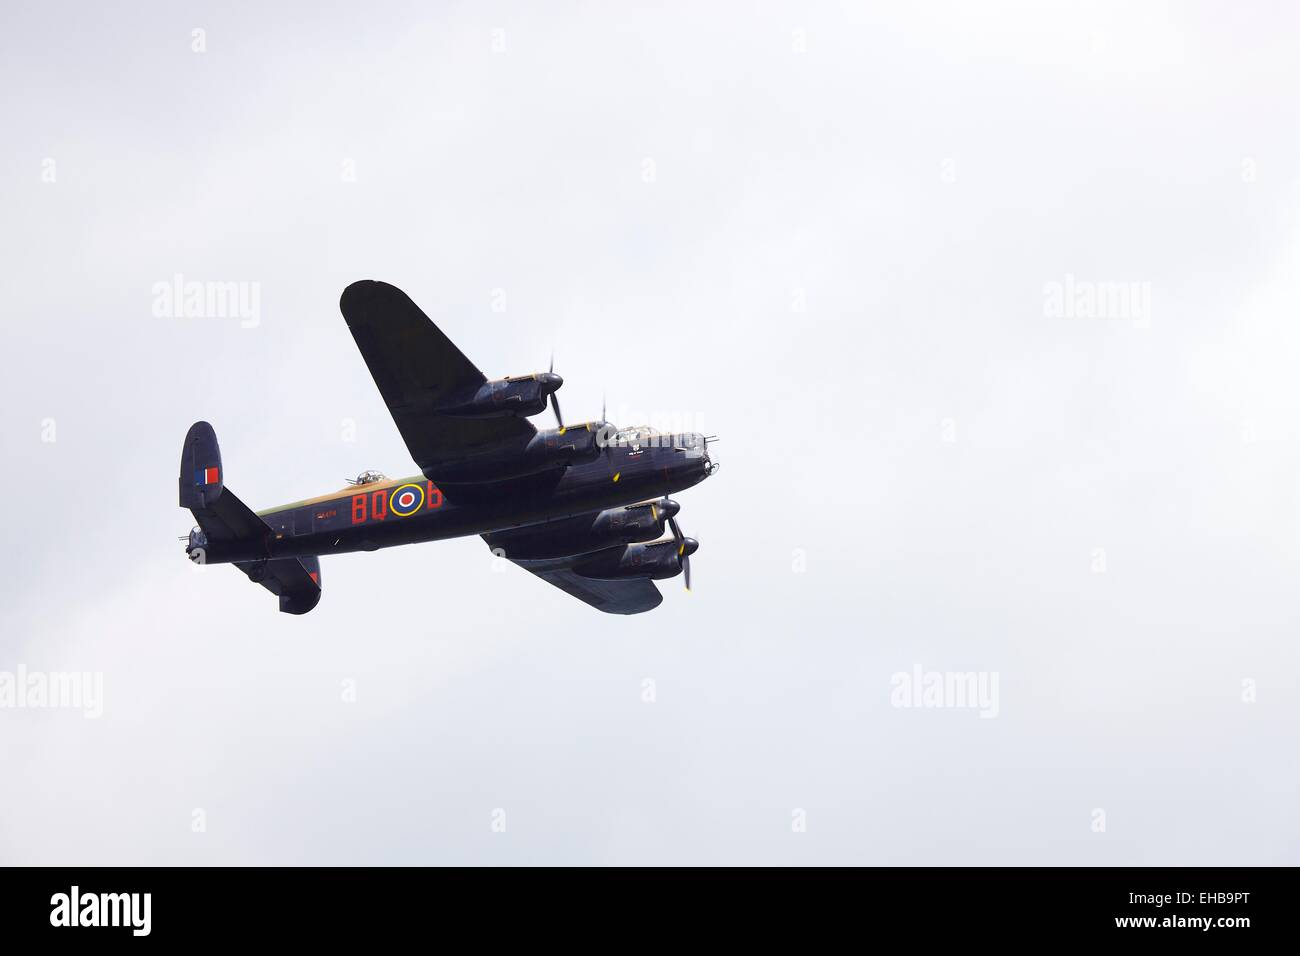 Battle of Britain Memorial Flight. Avro Lancaster B1 Bomber. Windermere Air Show 2011, Cumbria, UK. - Stock Image